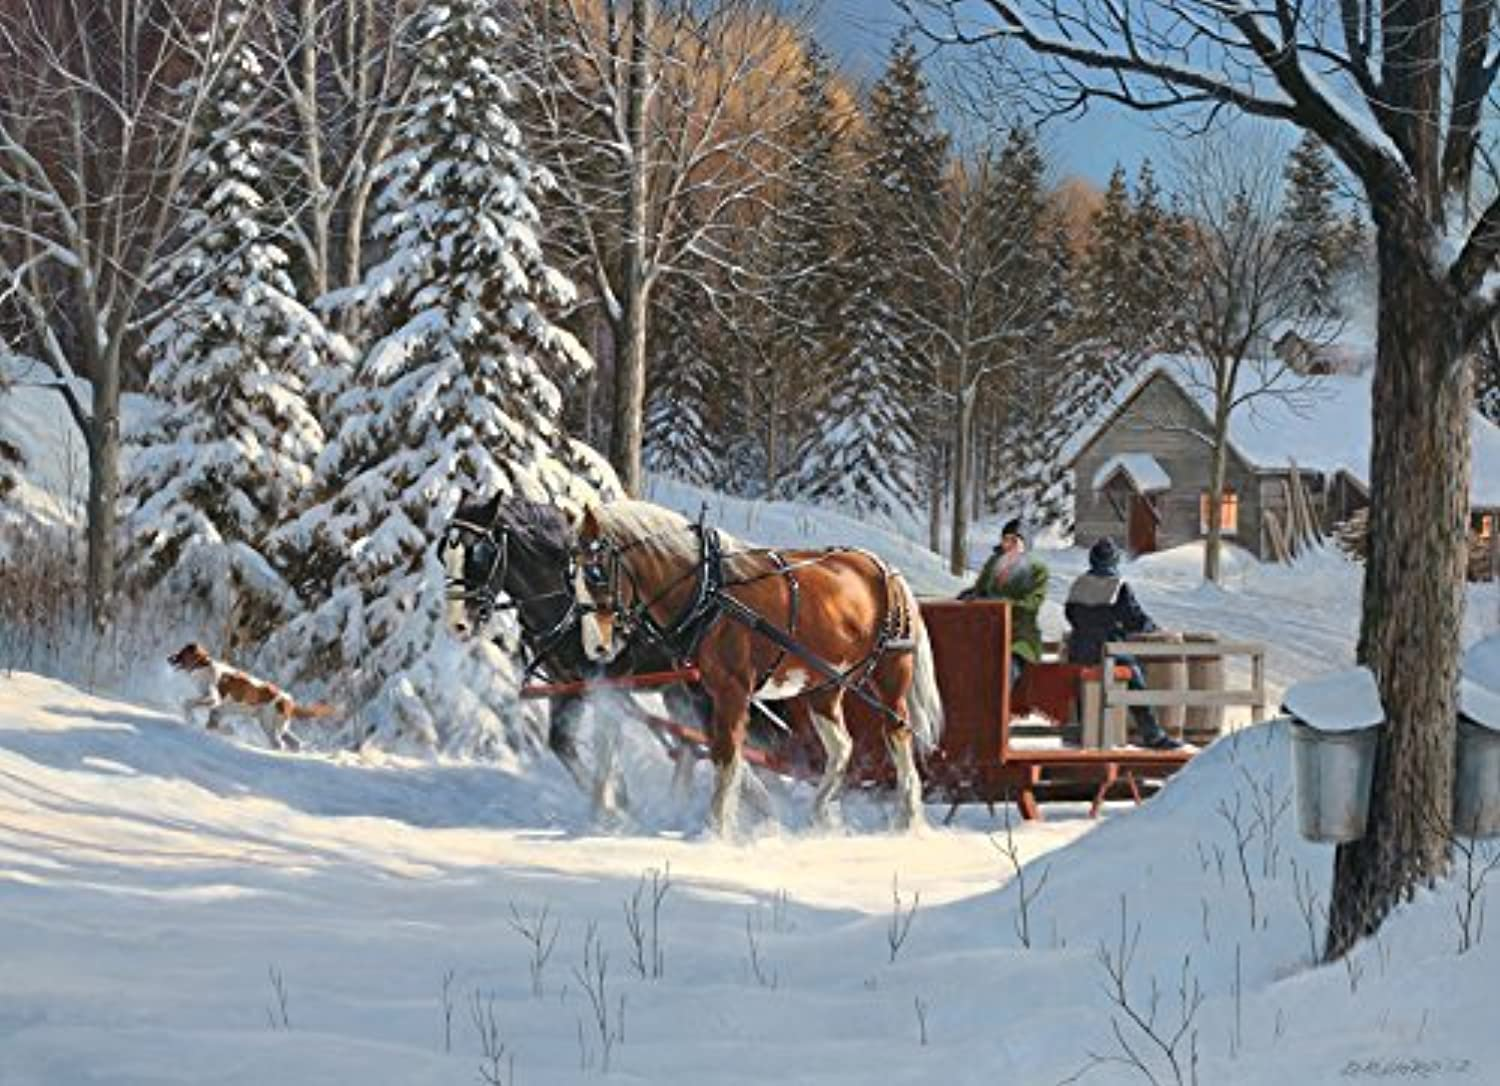 Sugar Shack Horses, A 1000 Piece Jigsaw Puzzle by Cobble Hill by Cobble Hill